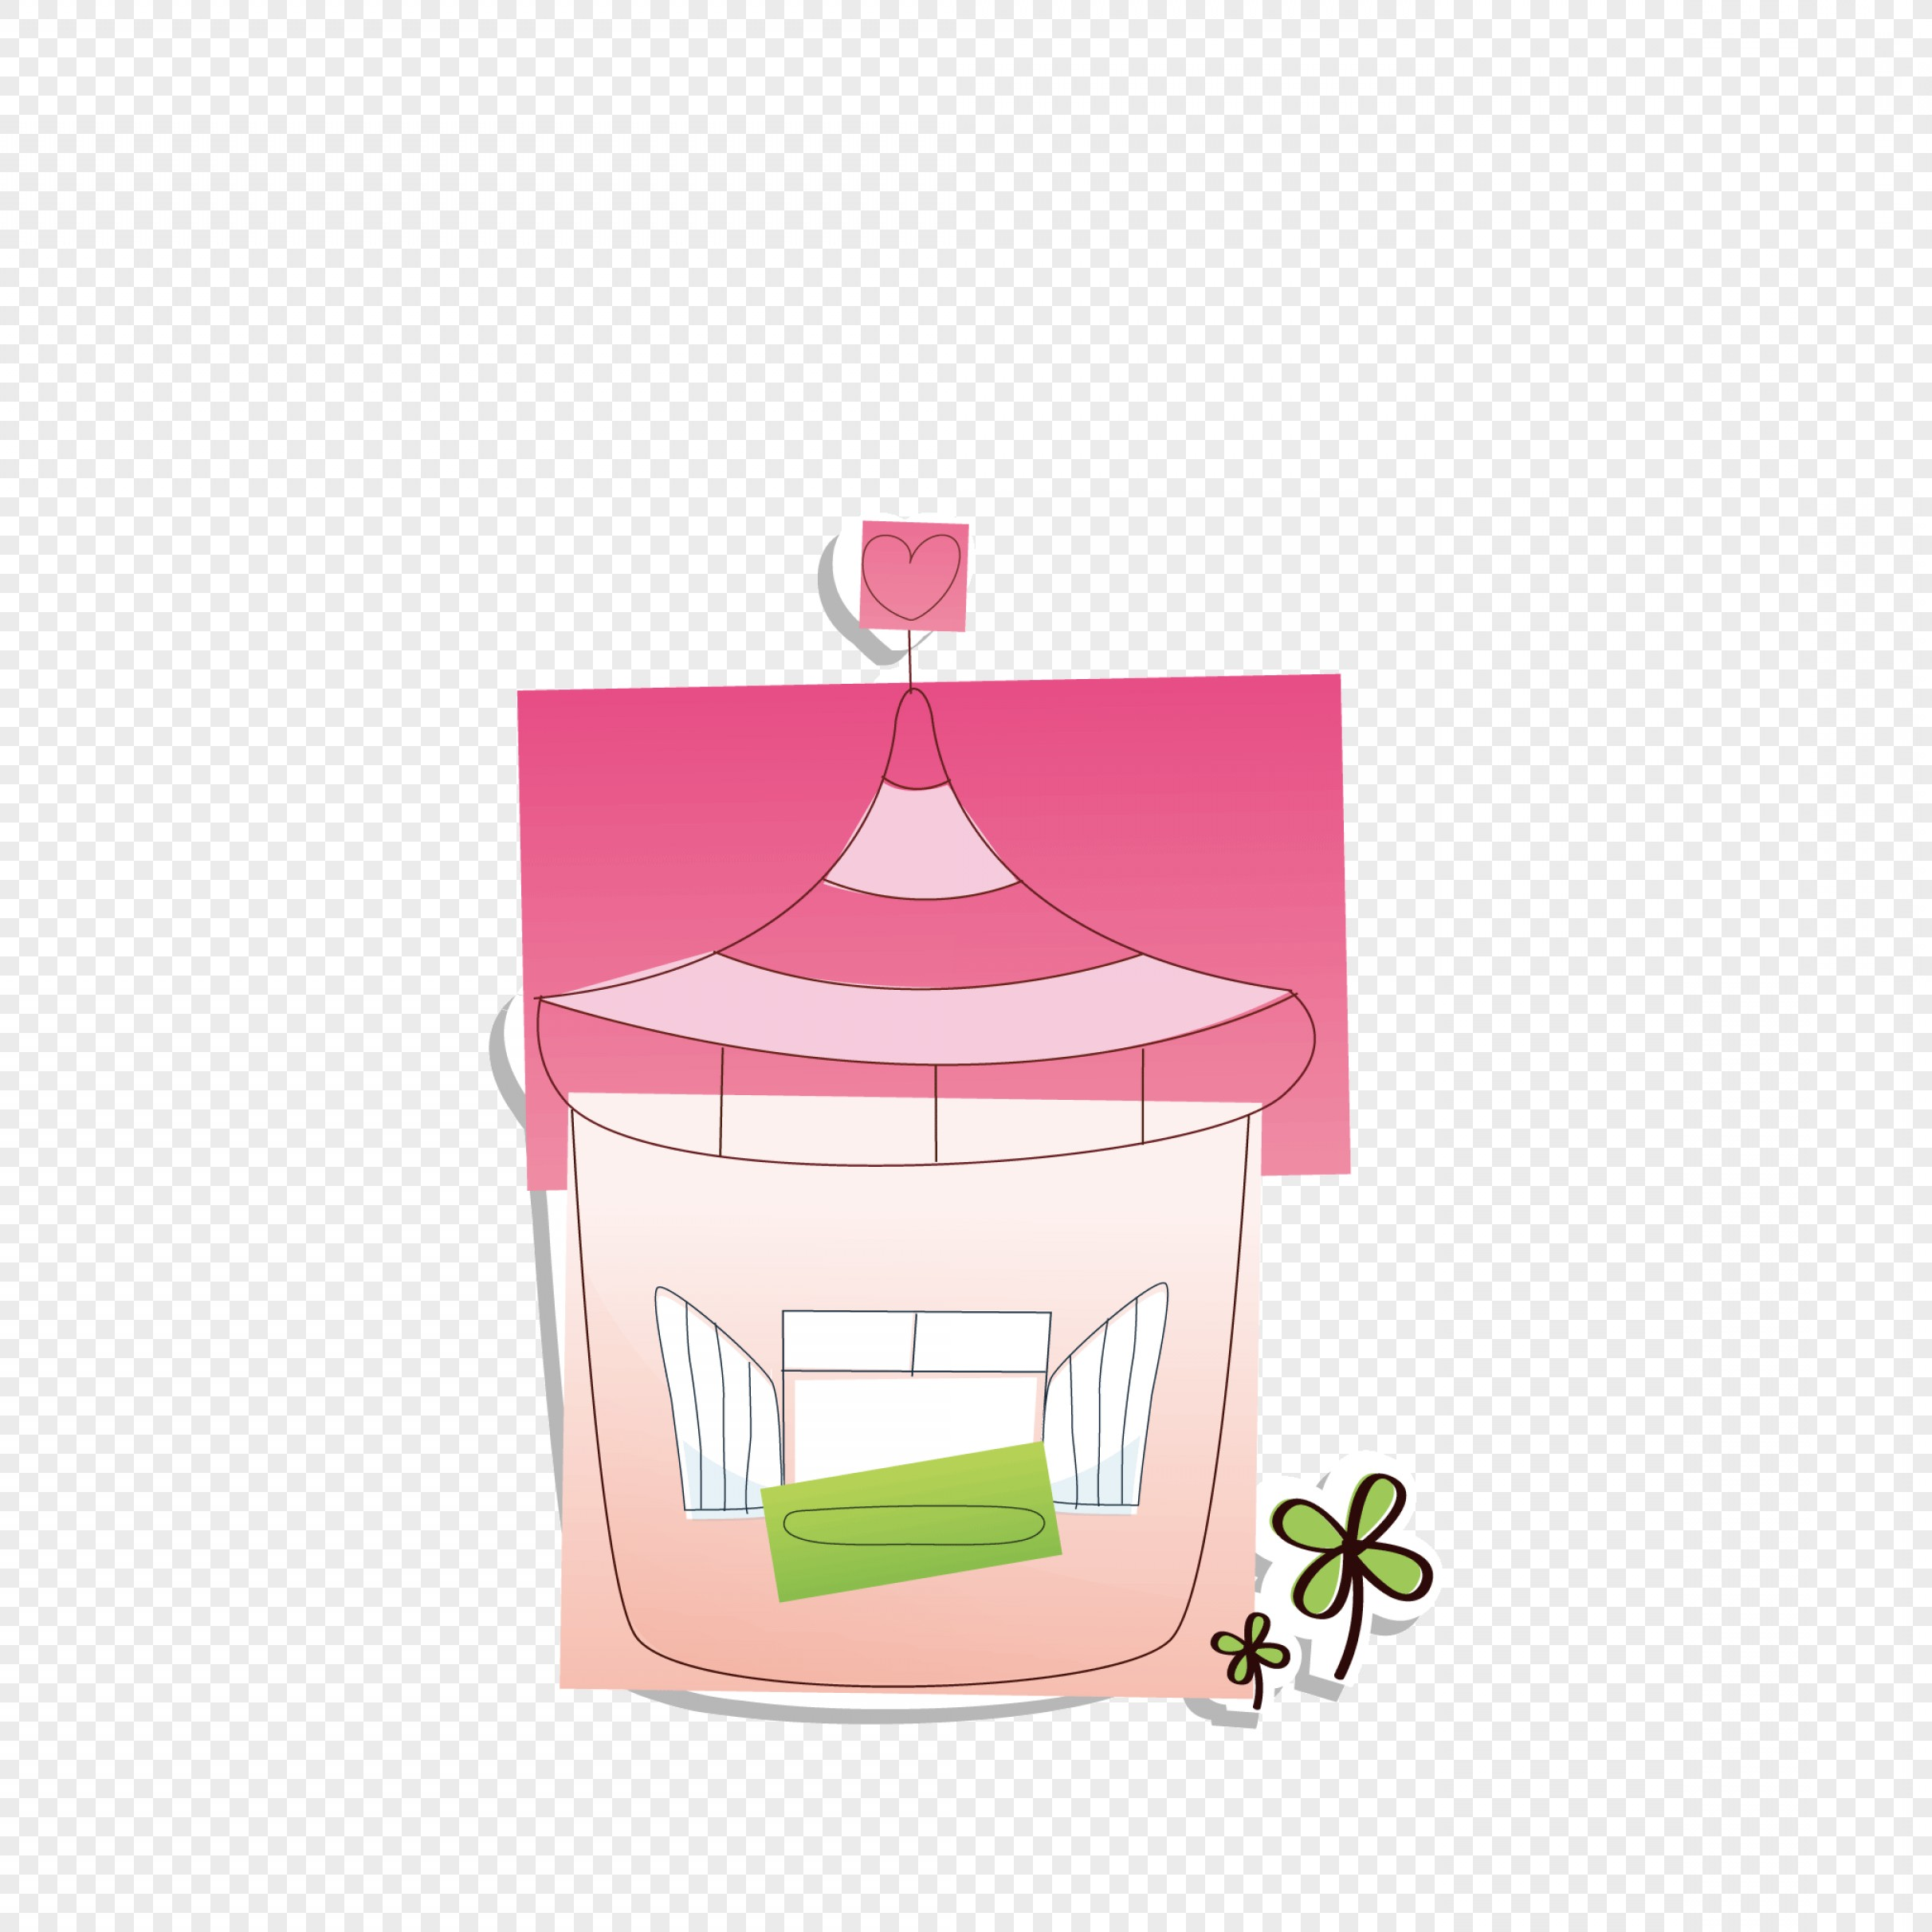 Shed PNG Vector: Cartoon Paper Cut Small House Vector